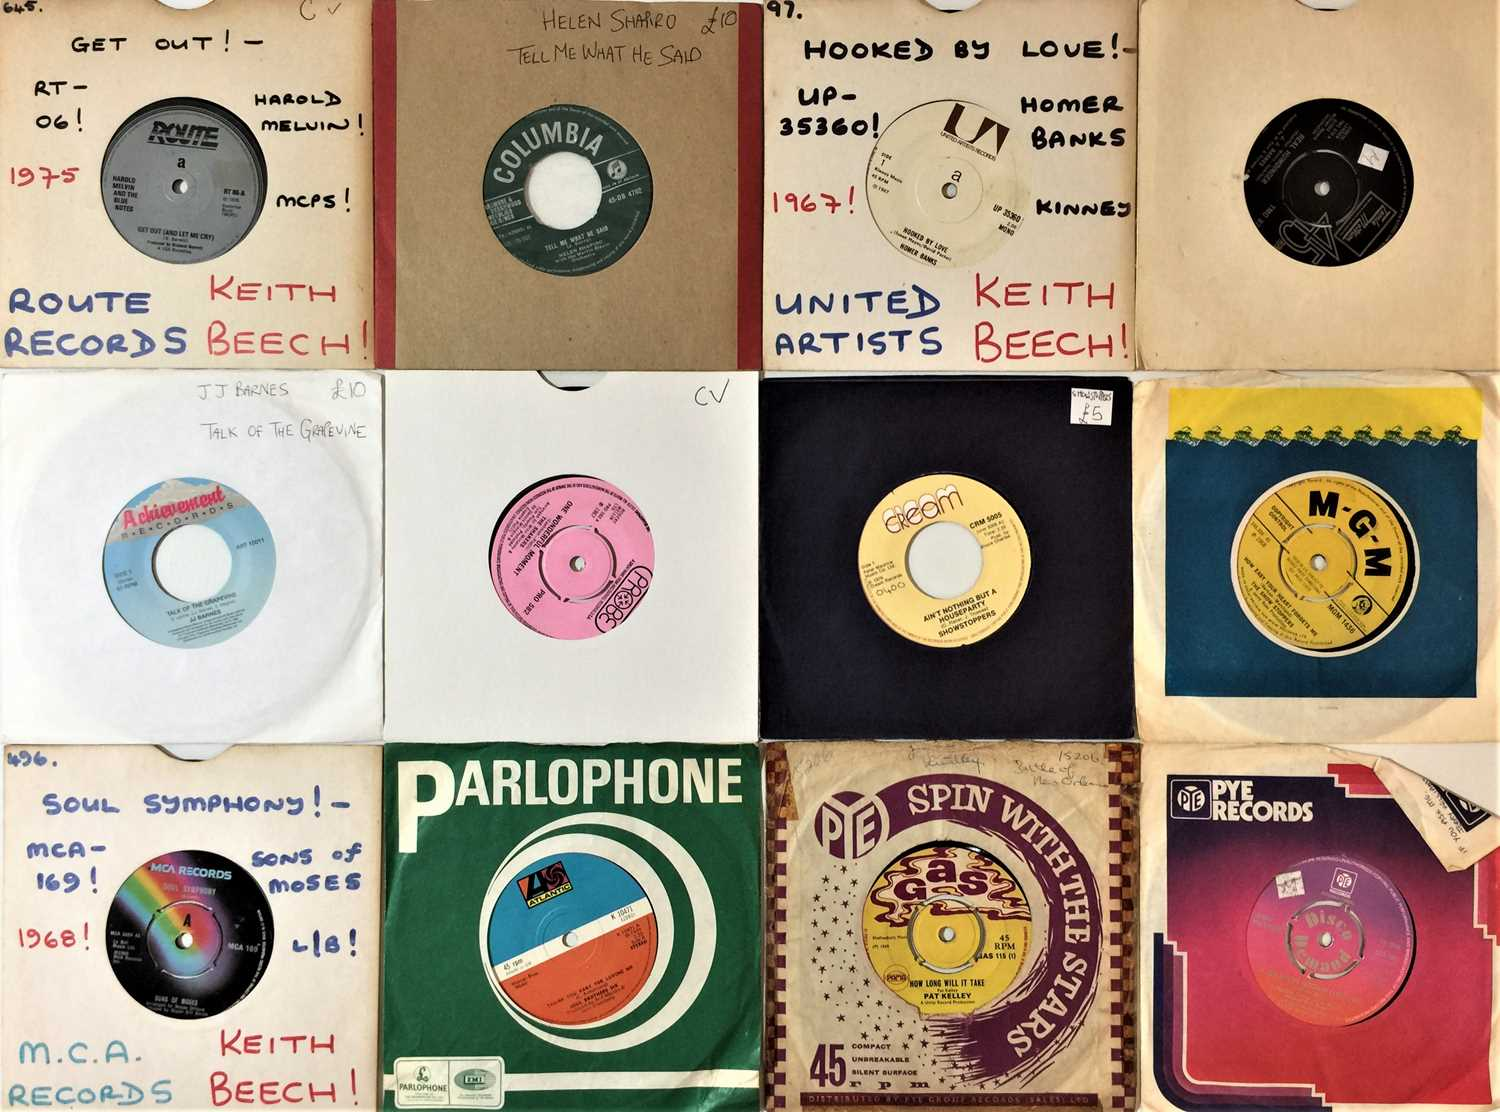 """60s/ 70s SOUL/ NORTHERN/ MOTOWN/ FUNK - 7"""" COLLECTION - Image 2 of 4"""